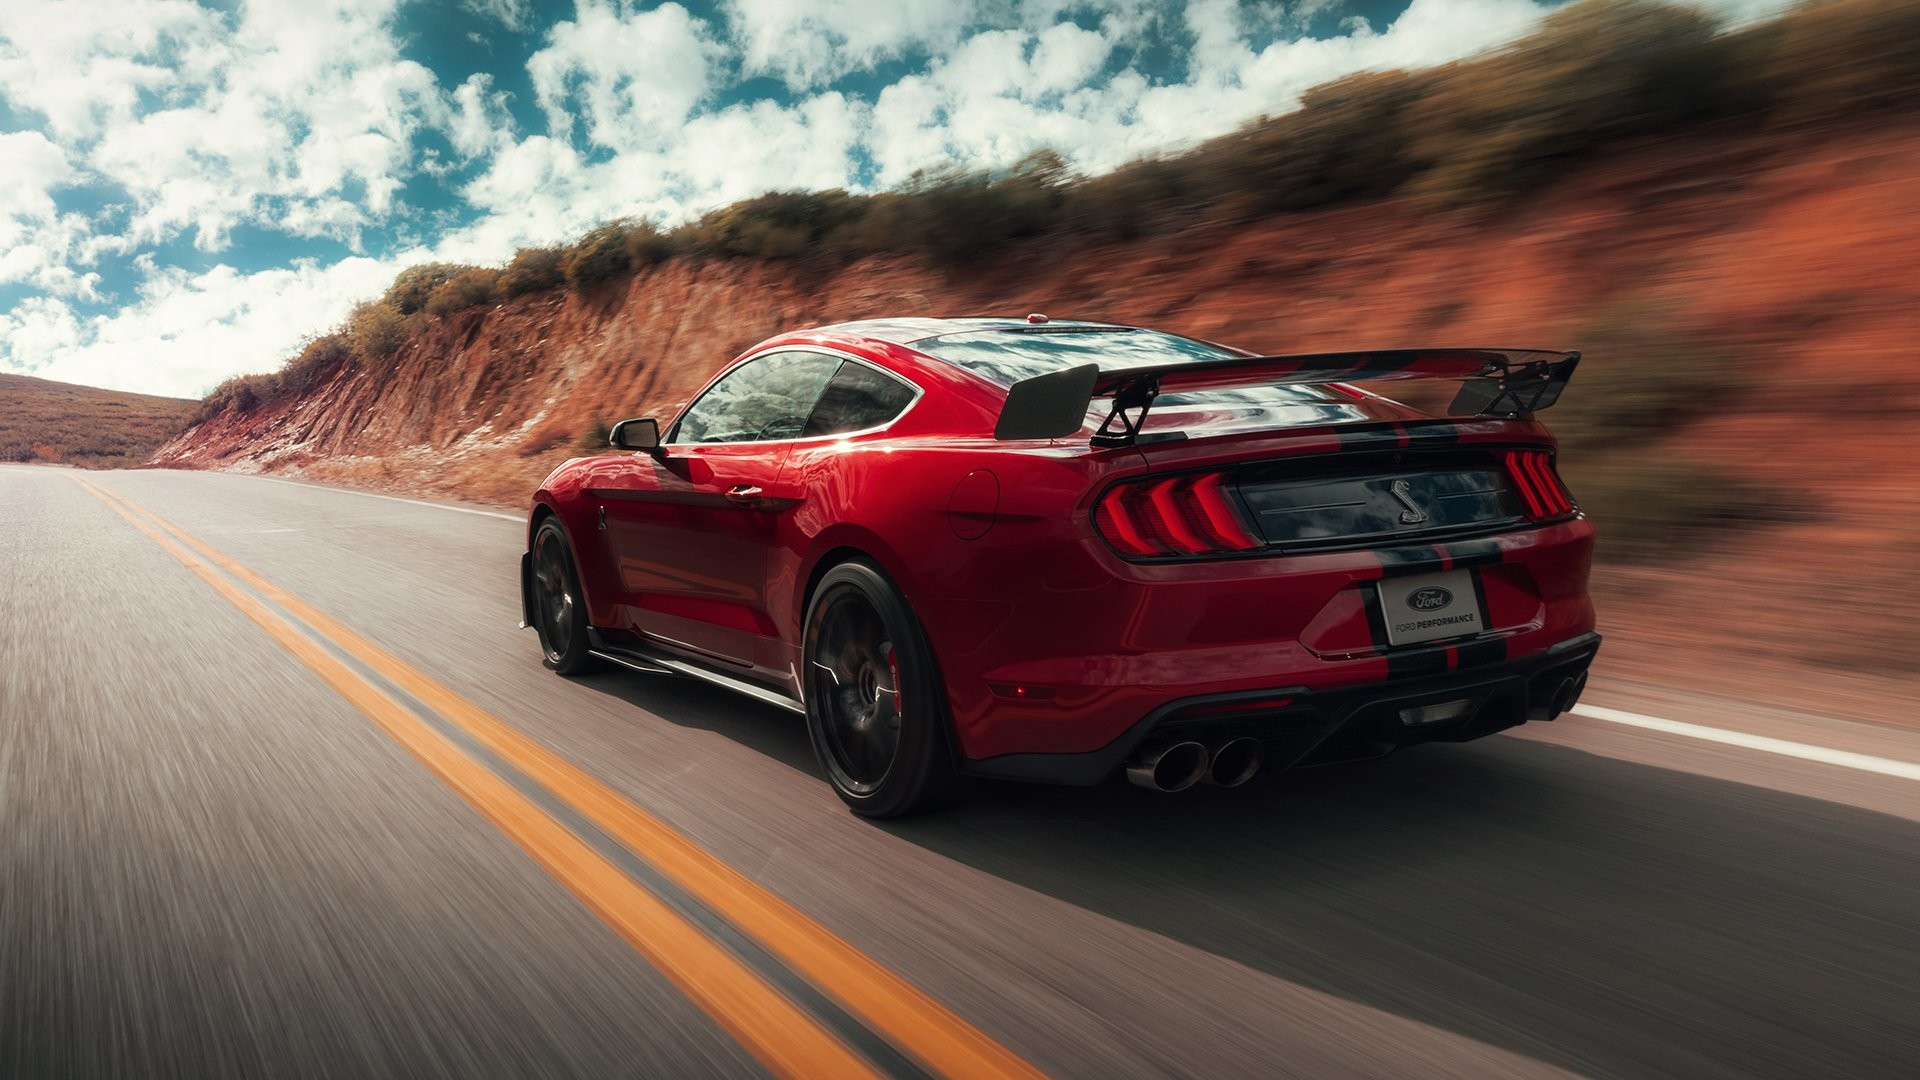 Res: 1920x1080, Back to 46+ 2020 Ford Mustang Shelby Gt500 Wallpapers